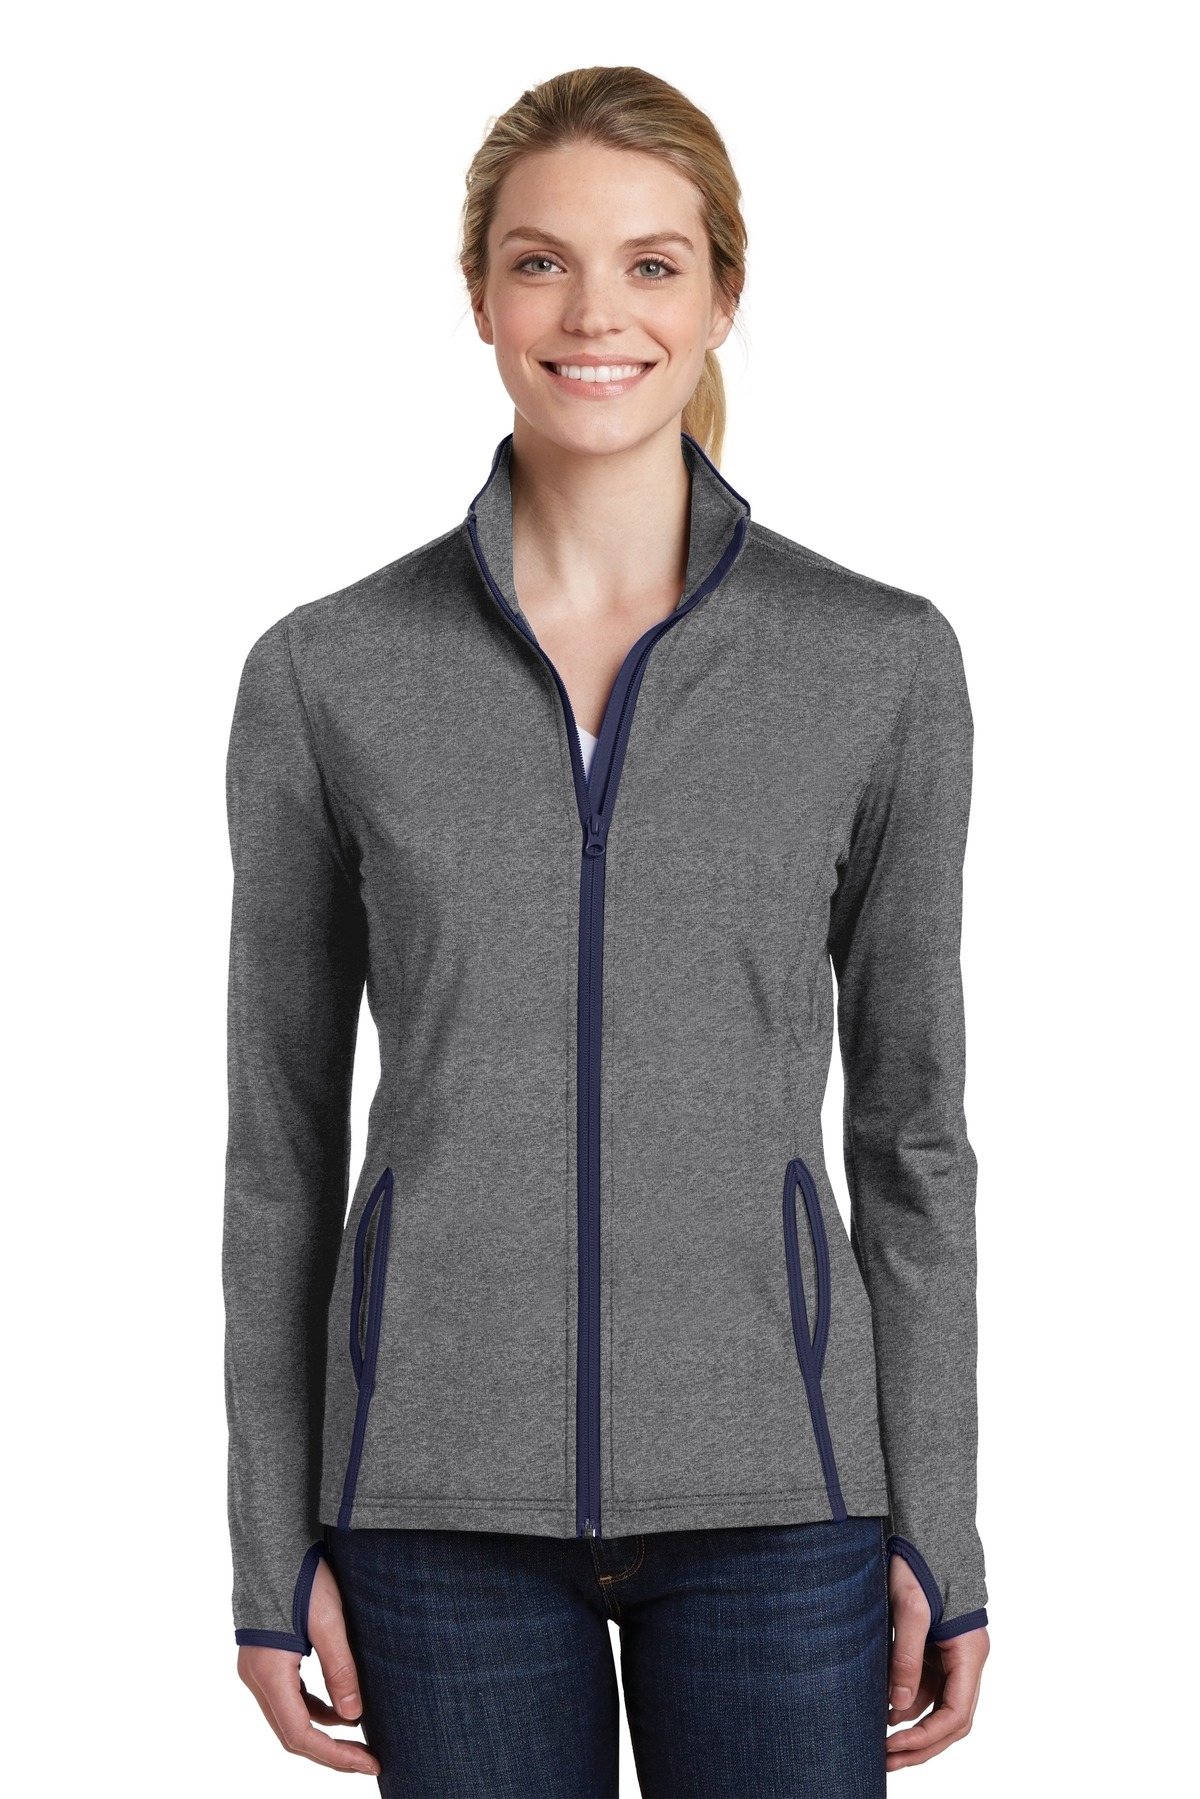 Sport-Tek ®  Ladies Sport-Wick ®  Stretch Contrast Full-Zip Jacket.  LST853 - Charcoal Grey Heather/ True Navy